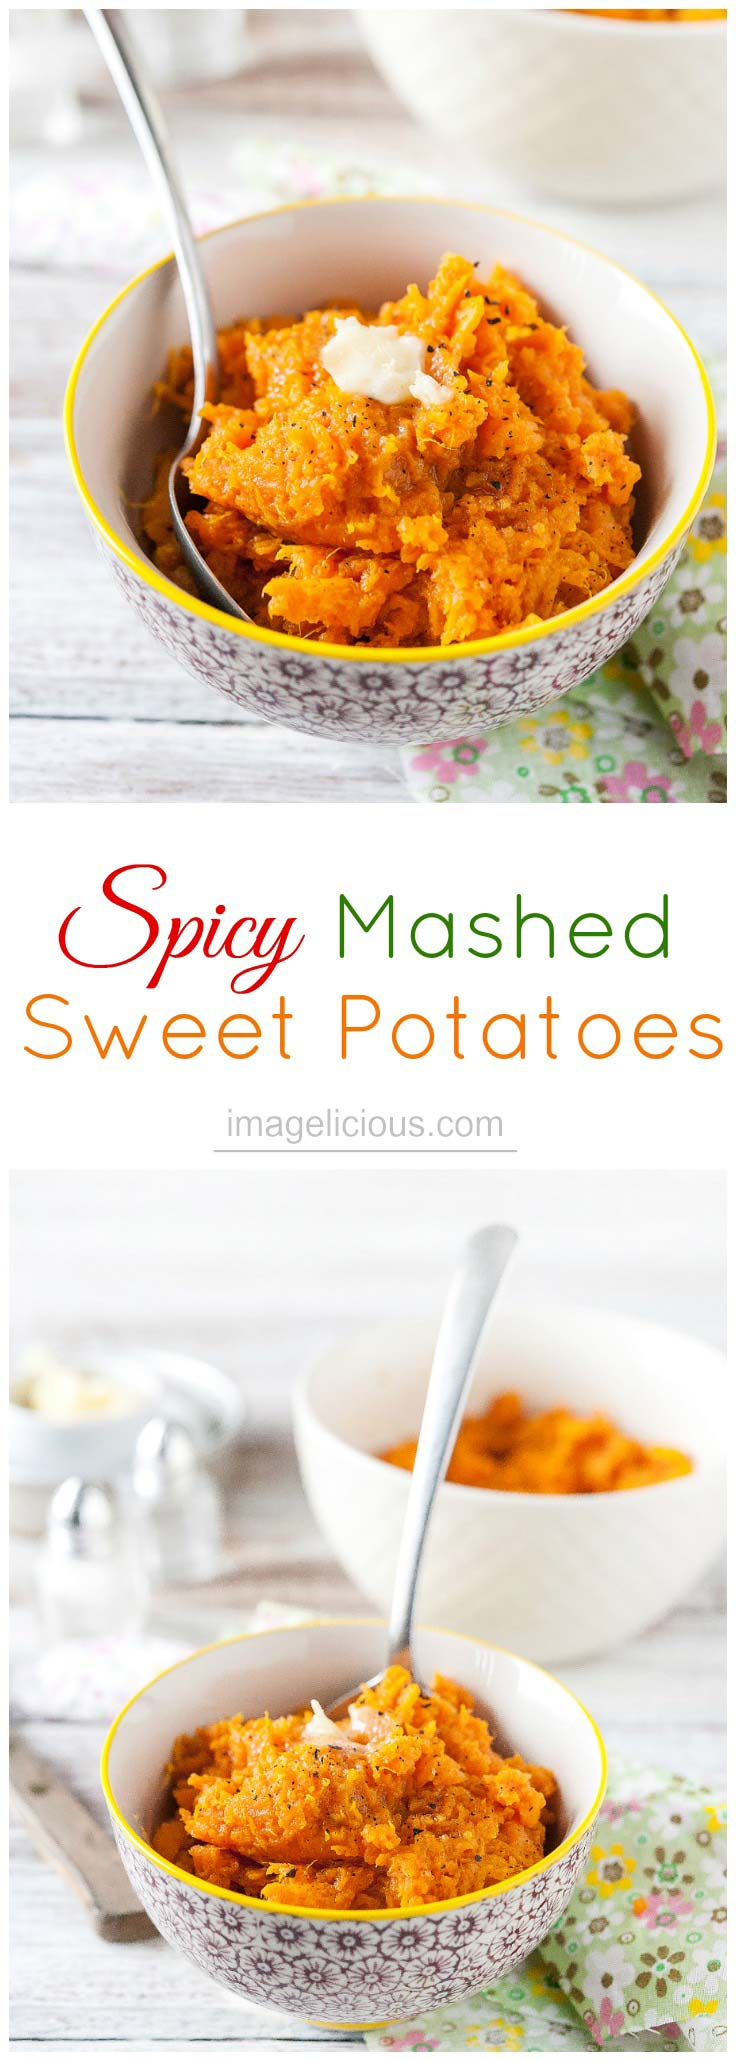 These Spicy Mashed Sweet Potatoes are an excellent side dish - sweet, savoury, and spicy they are a delicious accompaniment to your favourite protein. Made with regular or vegan butter they will satisfy any diet | Imagelicious